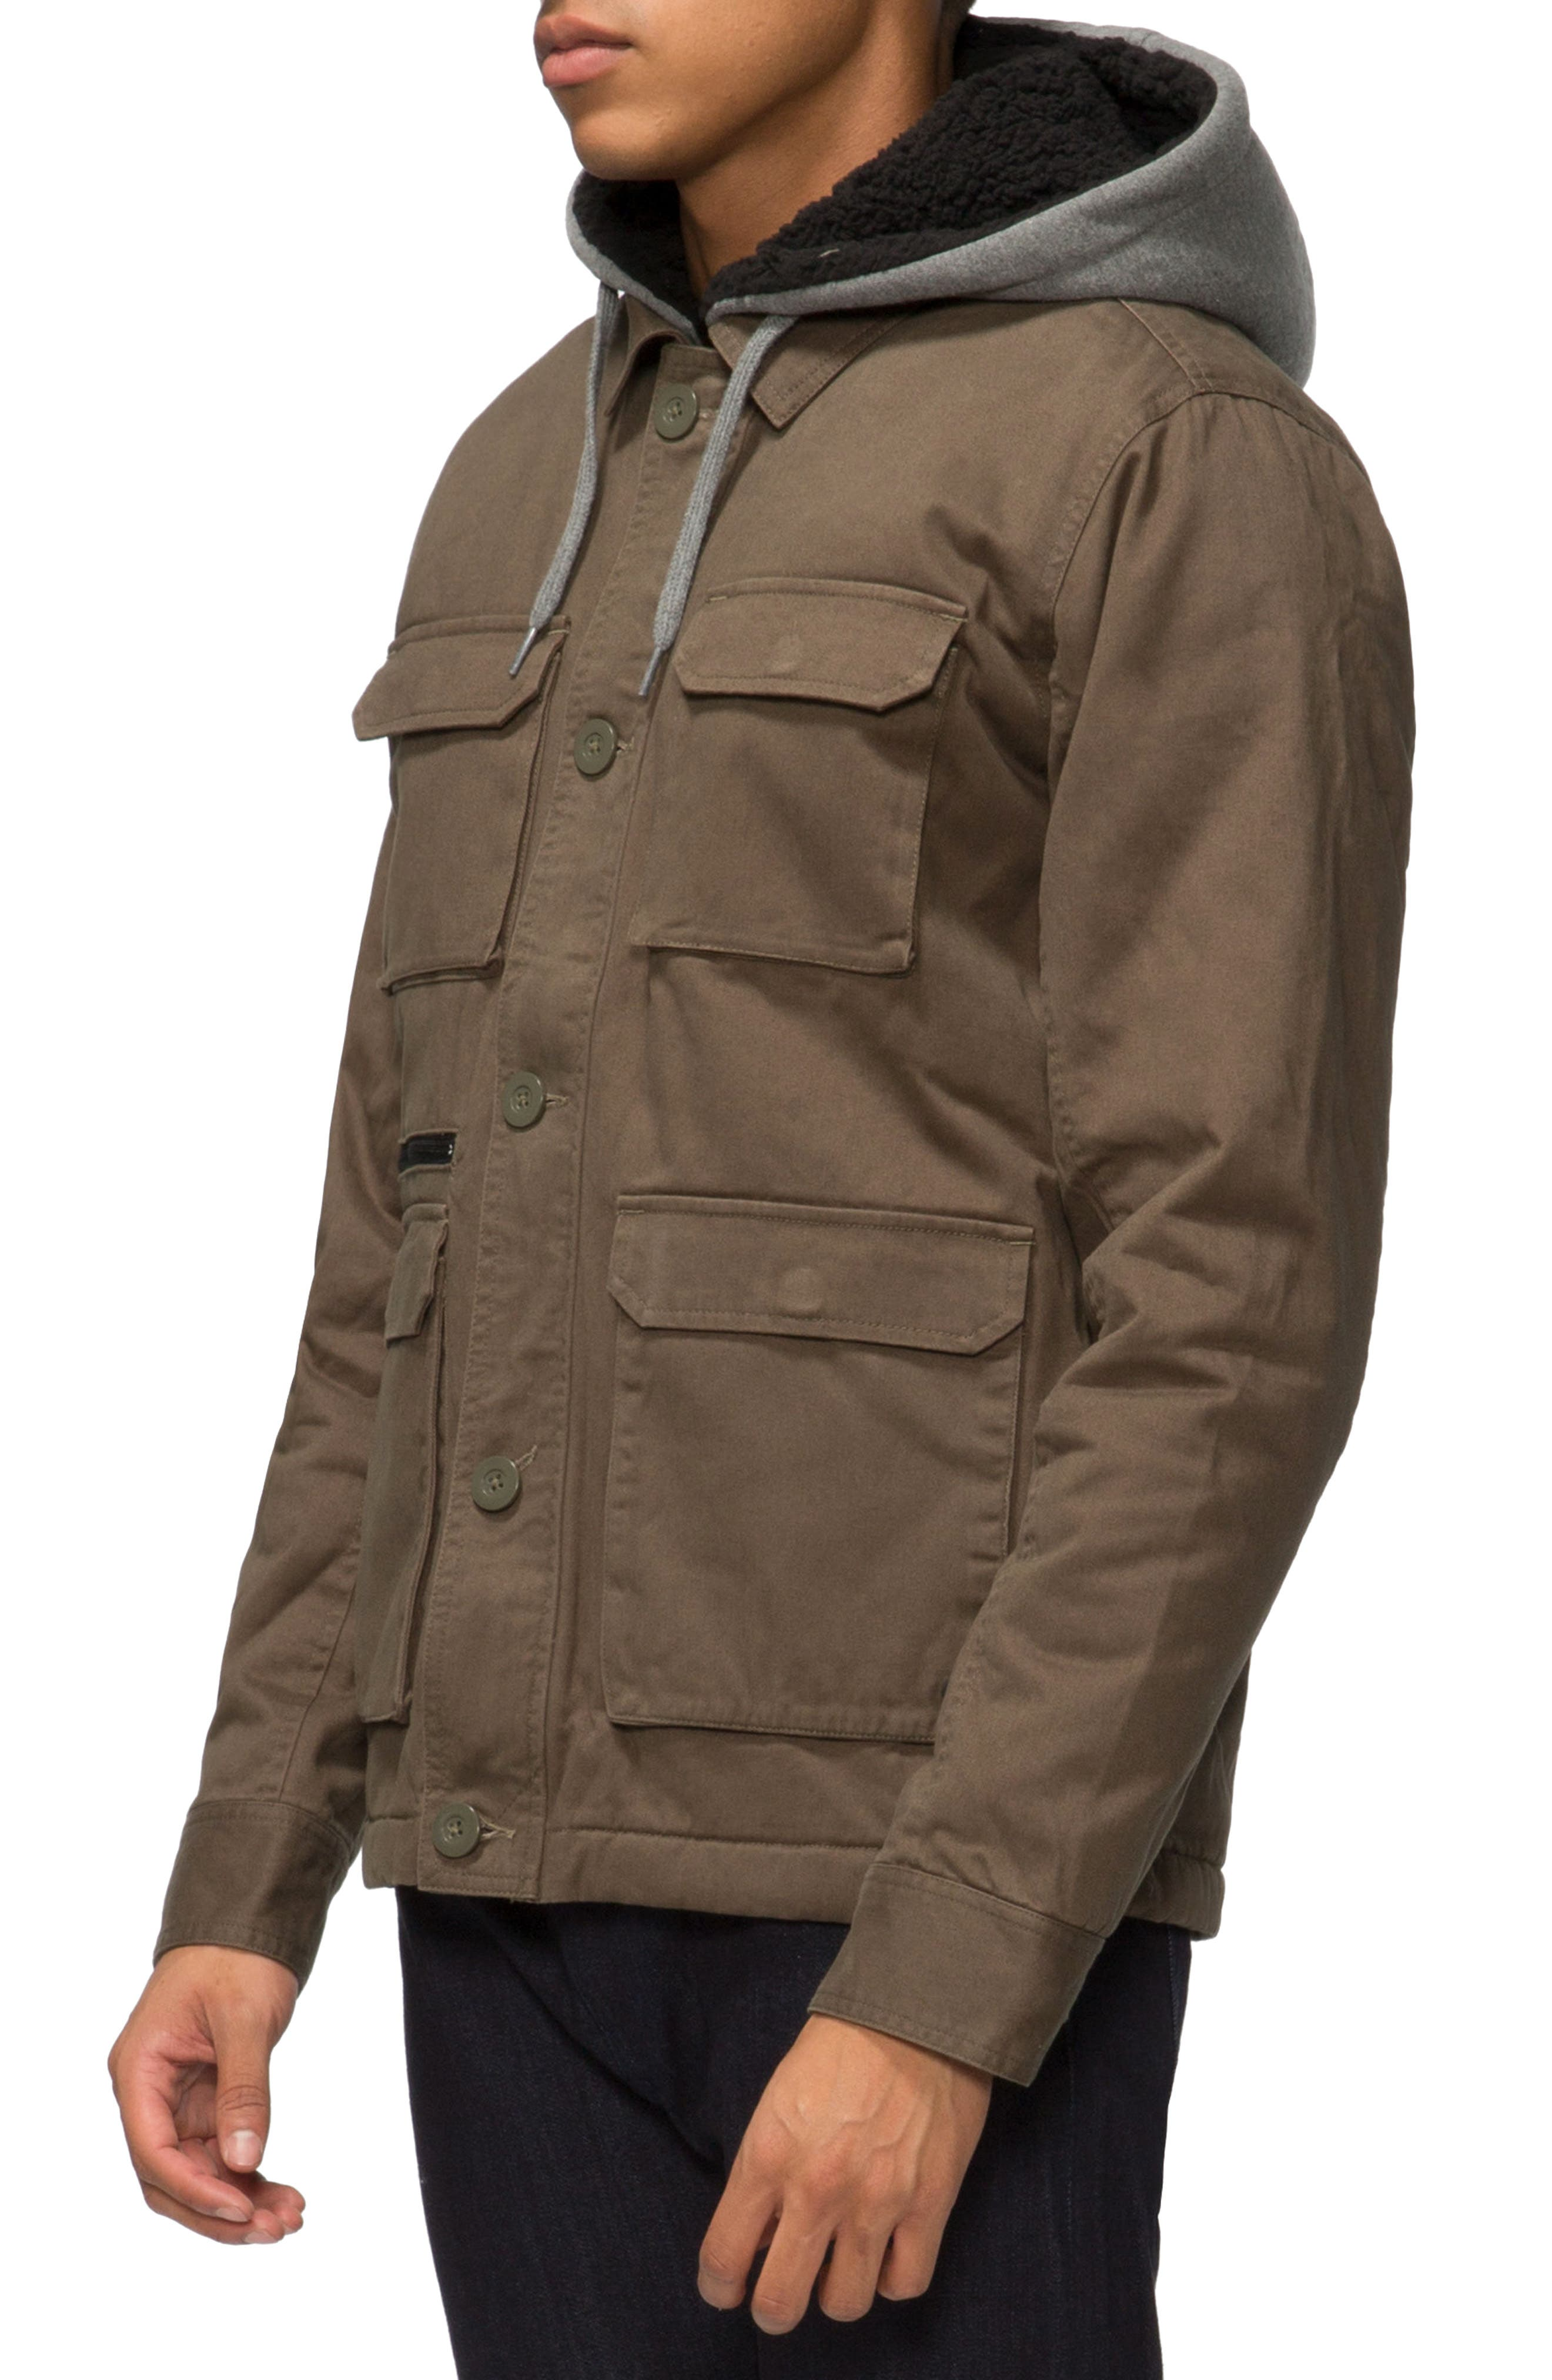 Droogs Plus Field Jacket with Detachable Hood,                             Alternate thumbnail 3, color,                             304